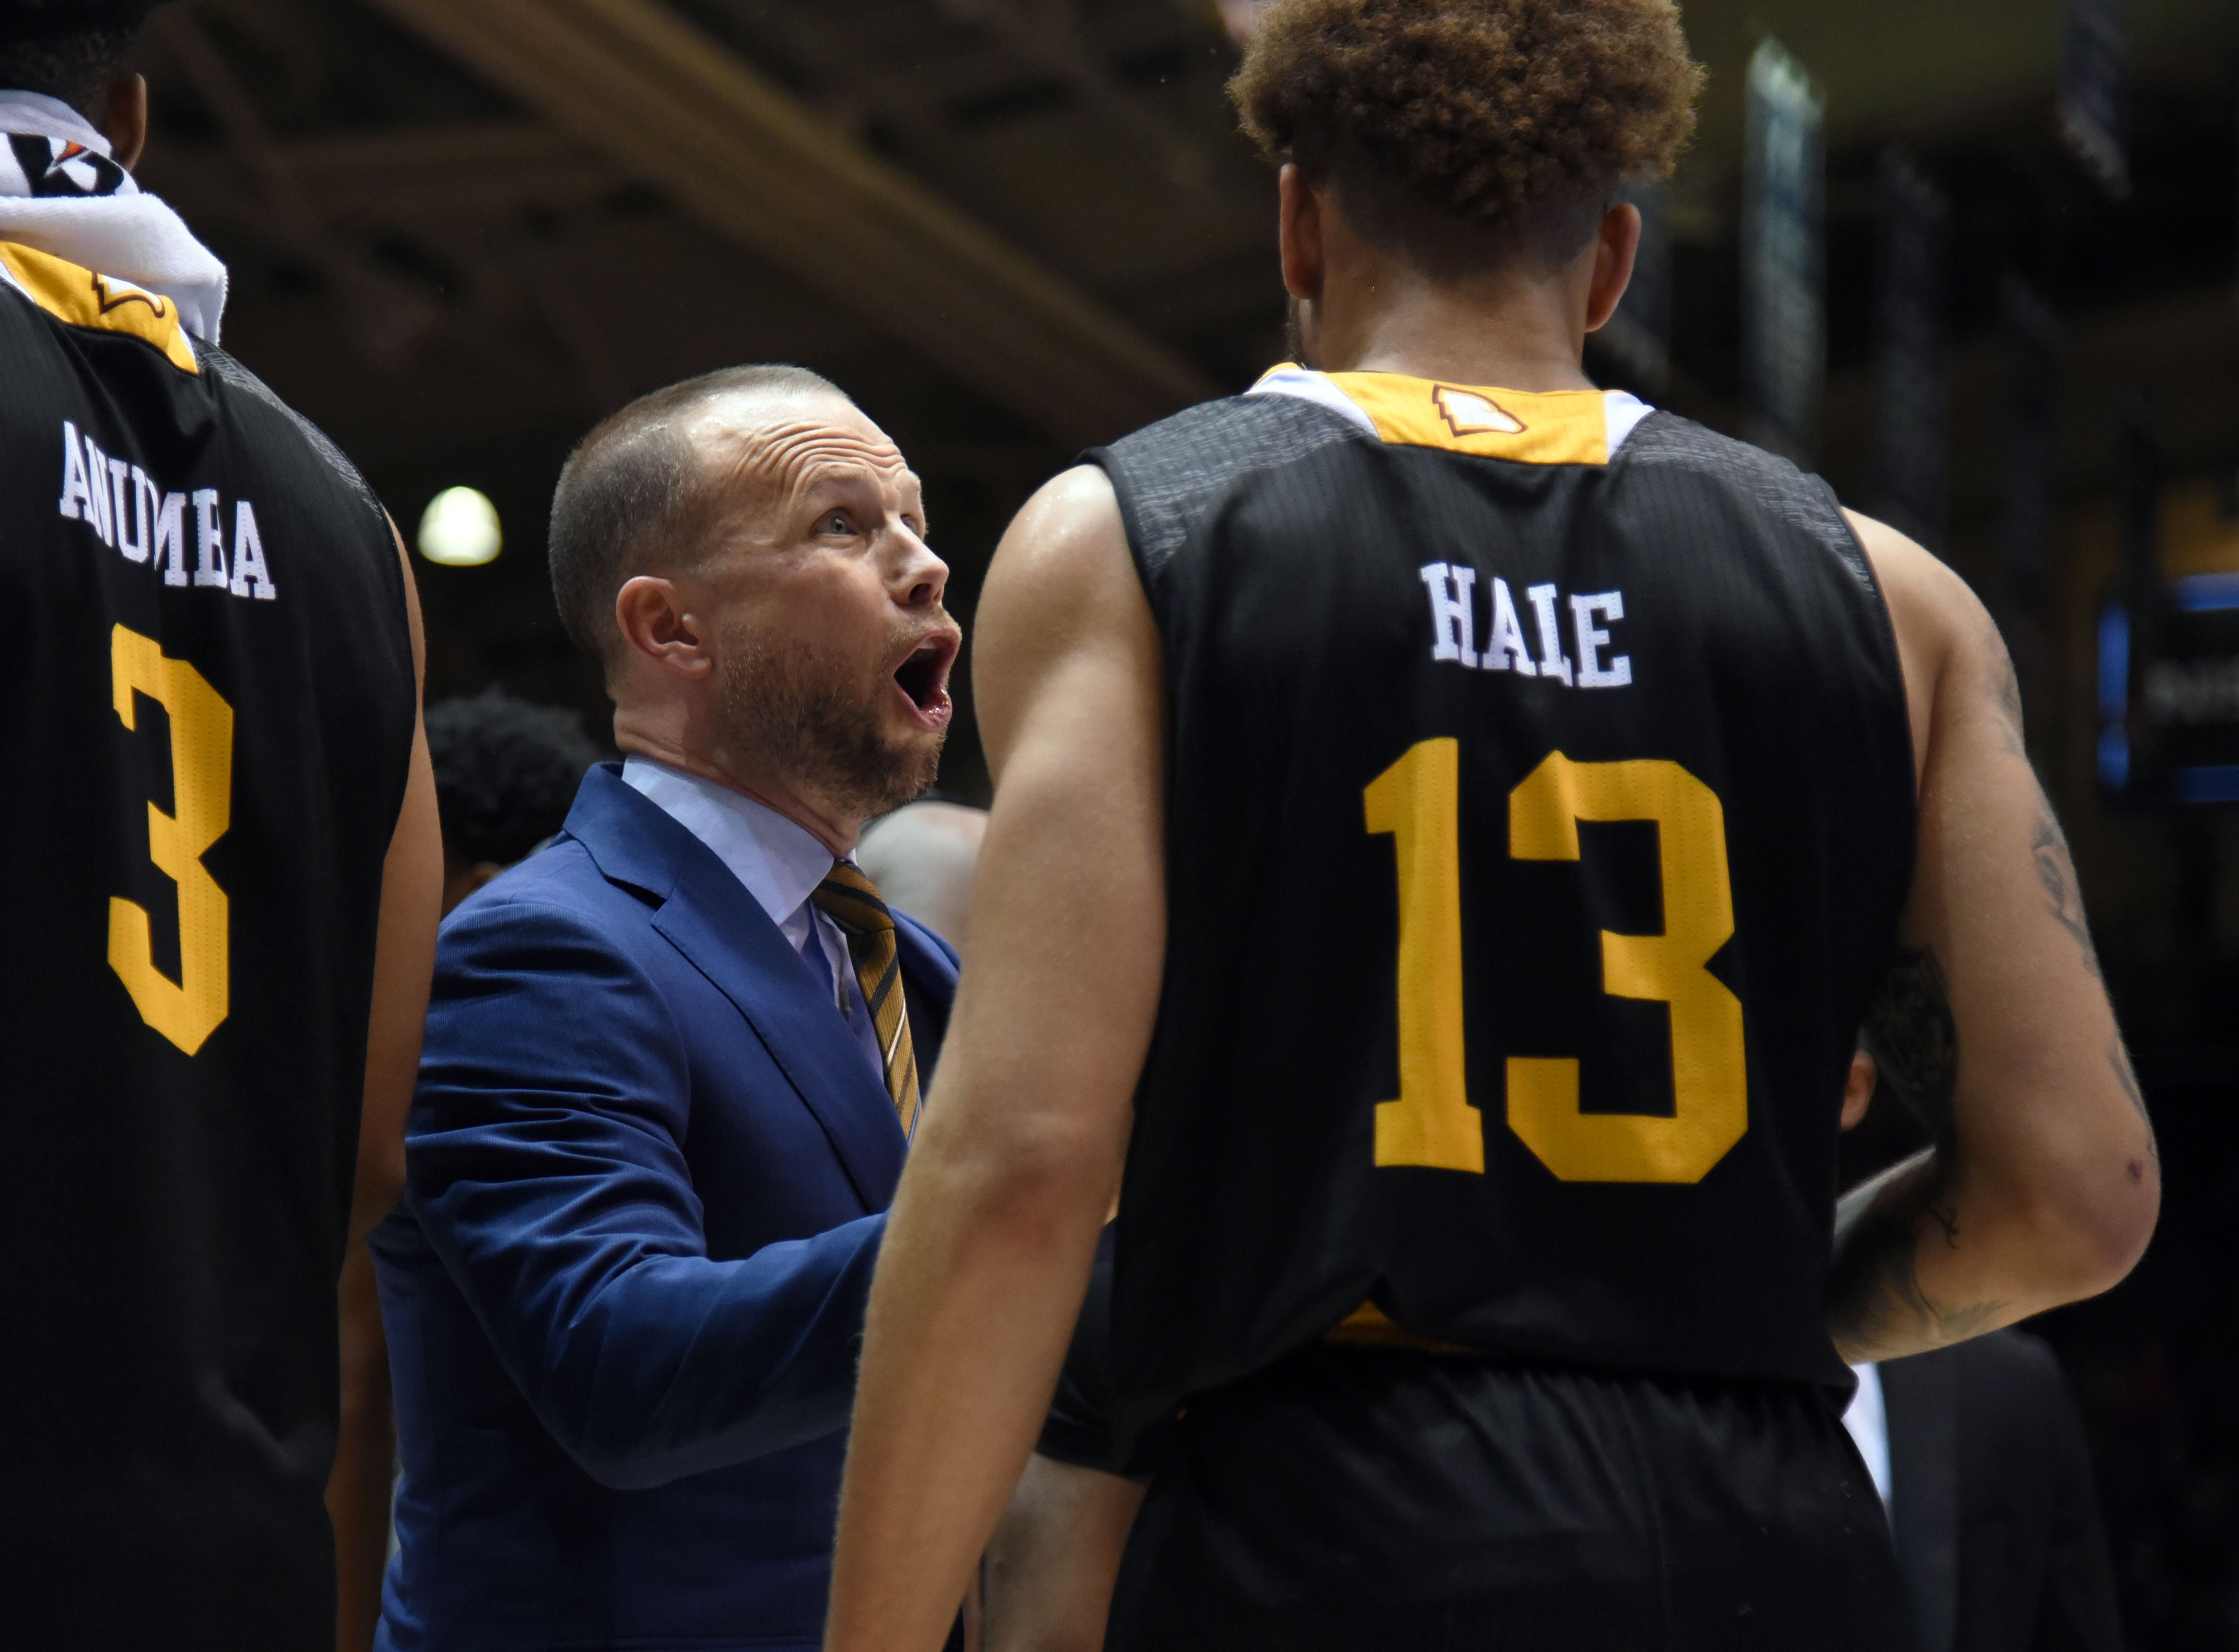 Winthrop Eagles head coach Pat Kelsey (left) talks to guard Hunter Hale during the first half against the Duke Blue Devils at Cameron Indoor Stadium.